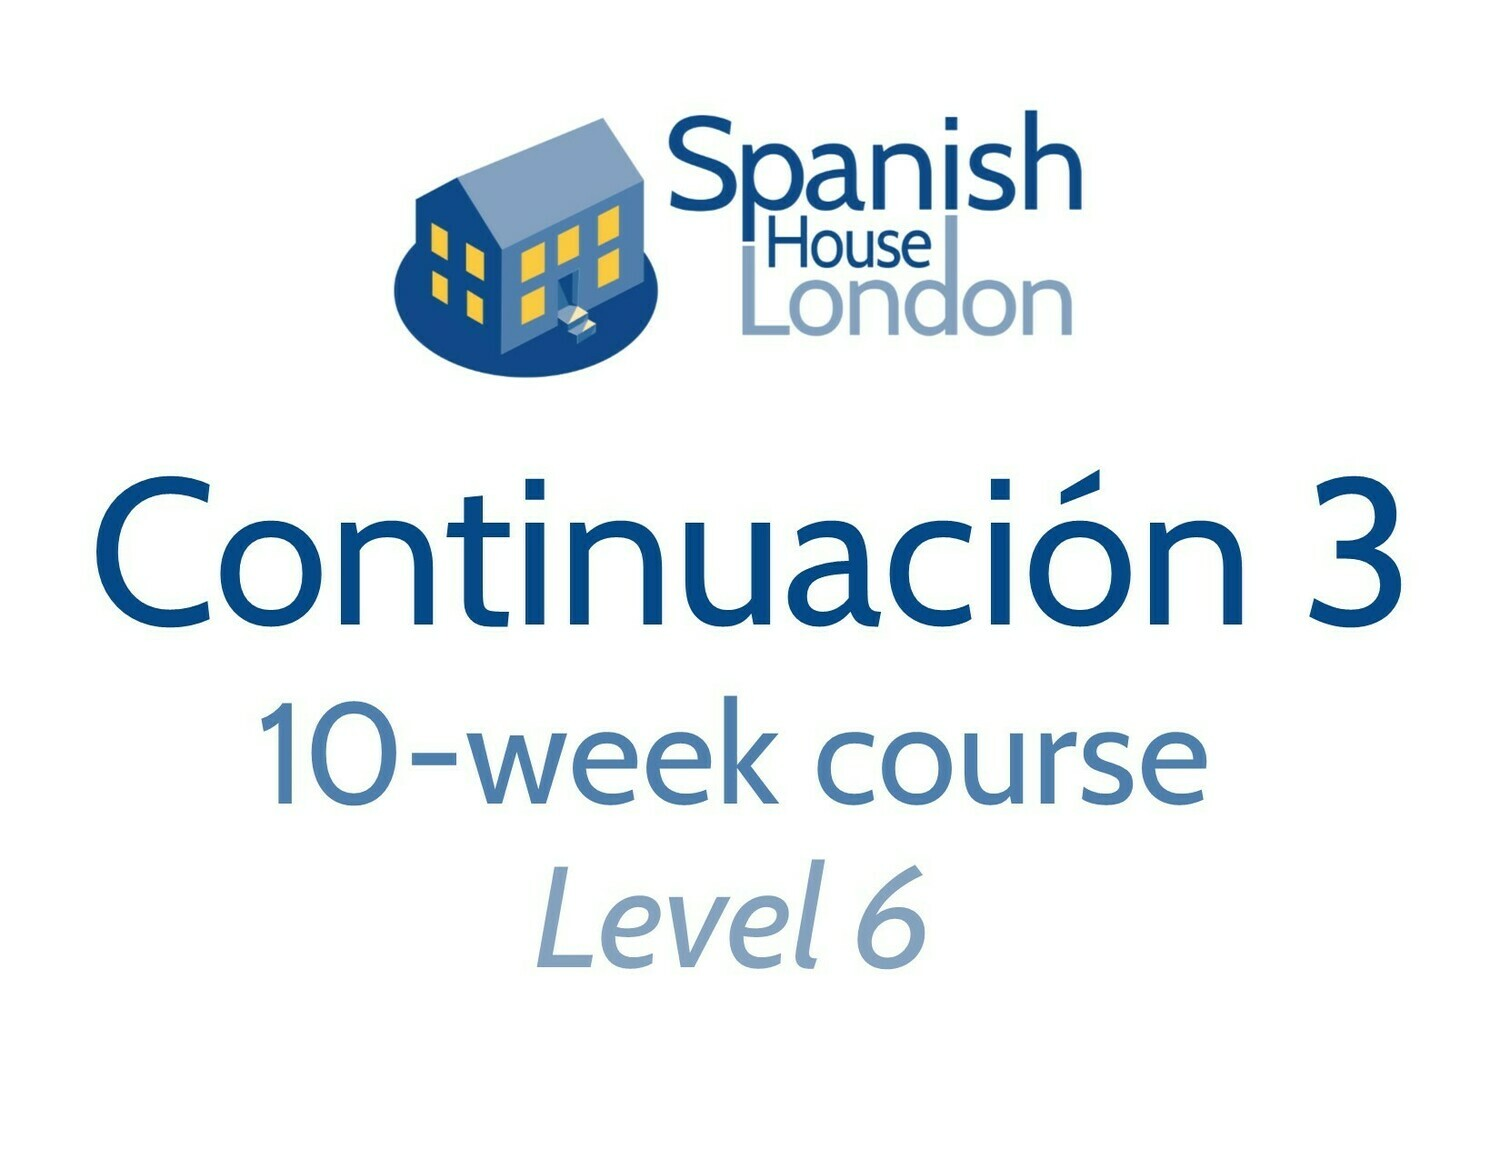 Continuacion 3 Course starting on 13th August at 6pm in Euston